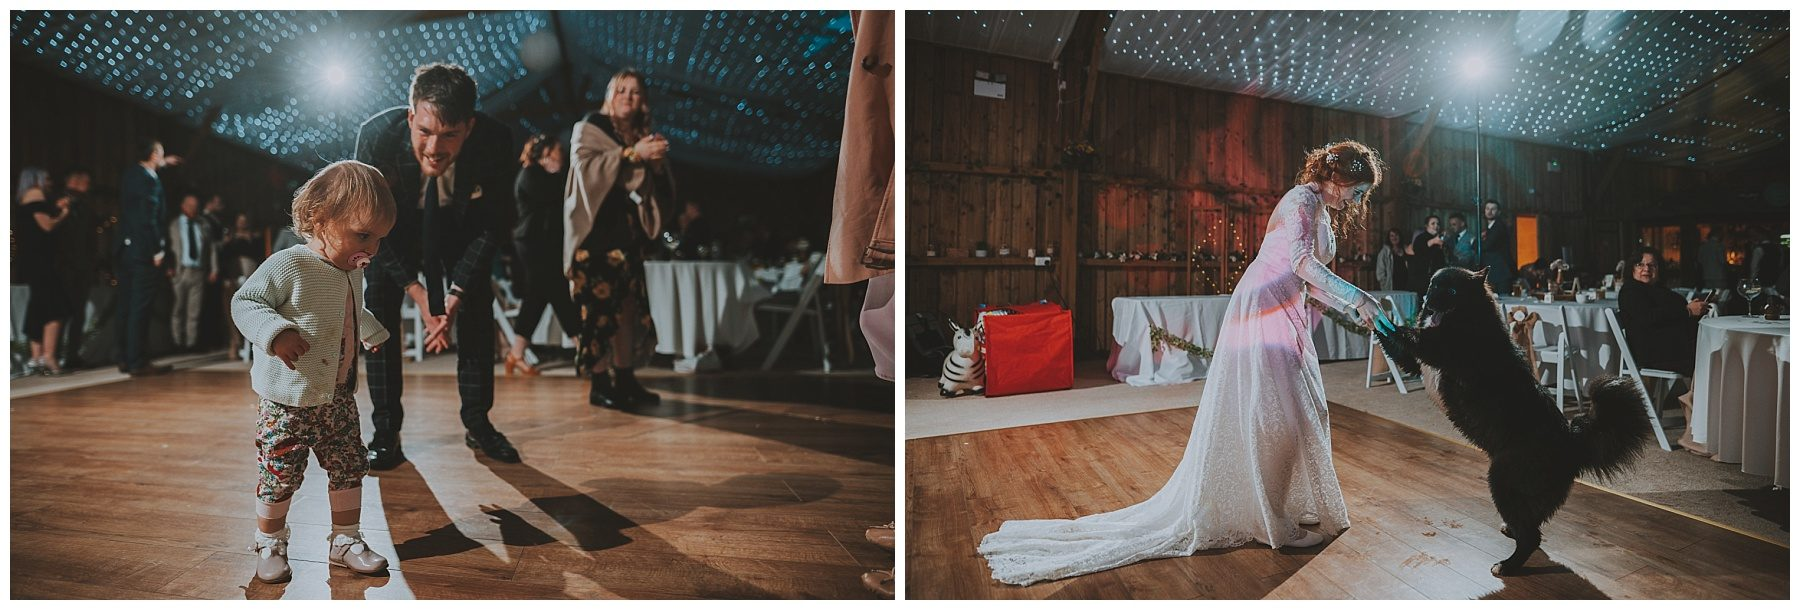 Cornwall rustic wedding barn first dance